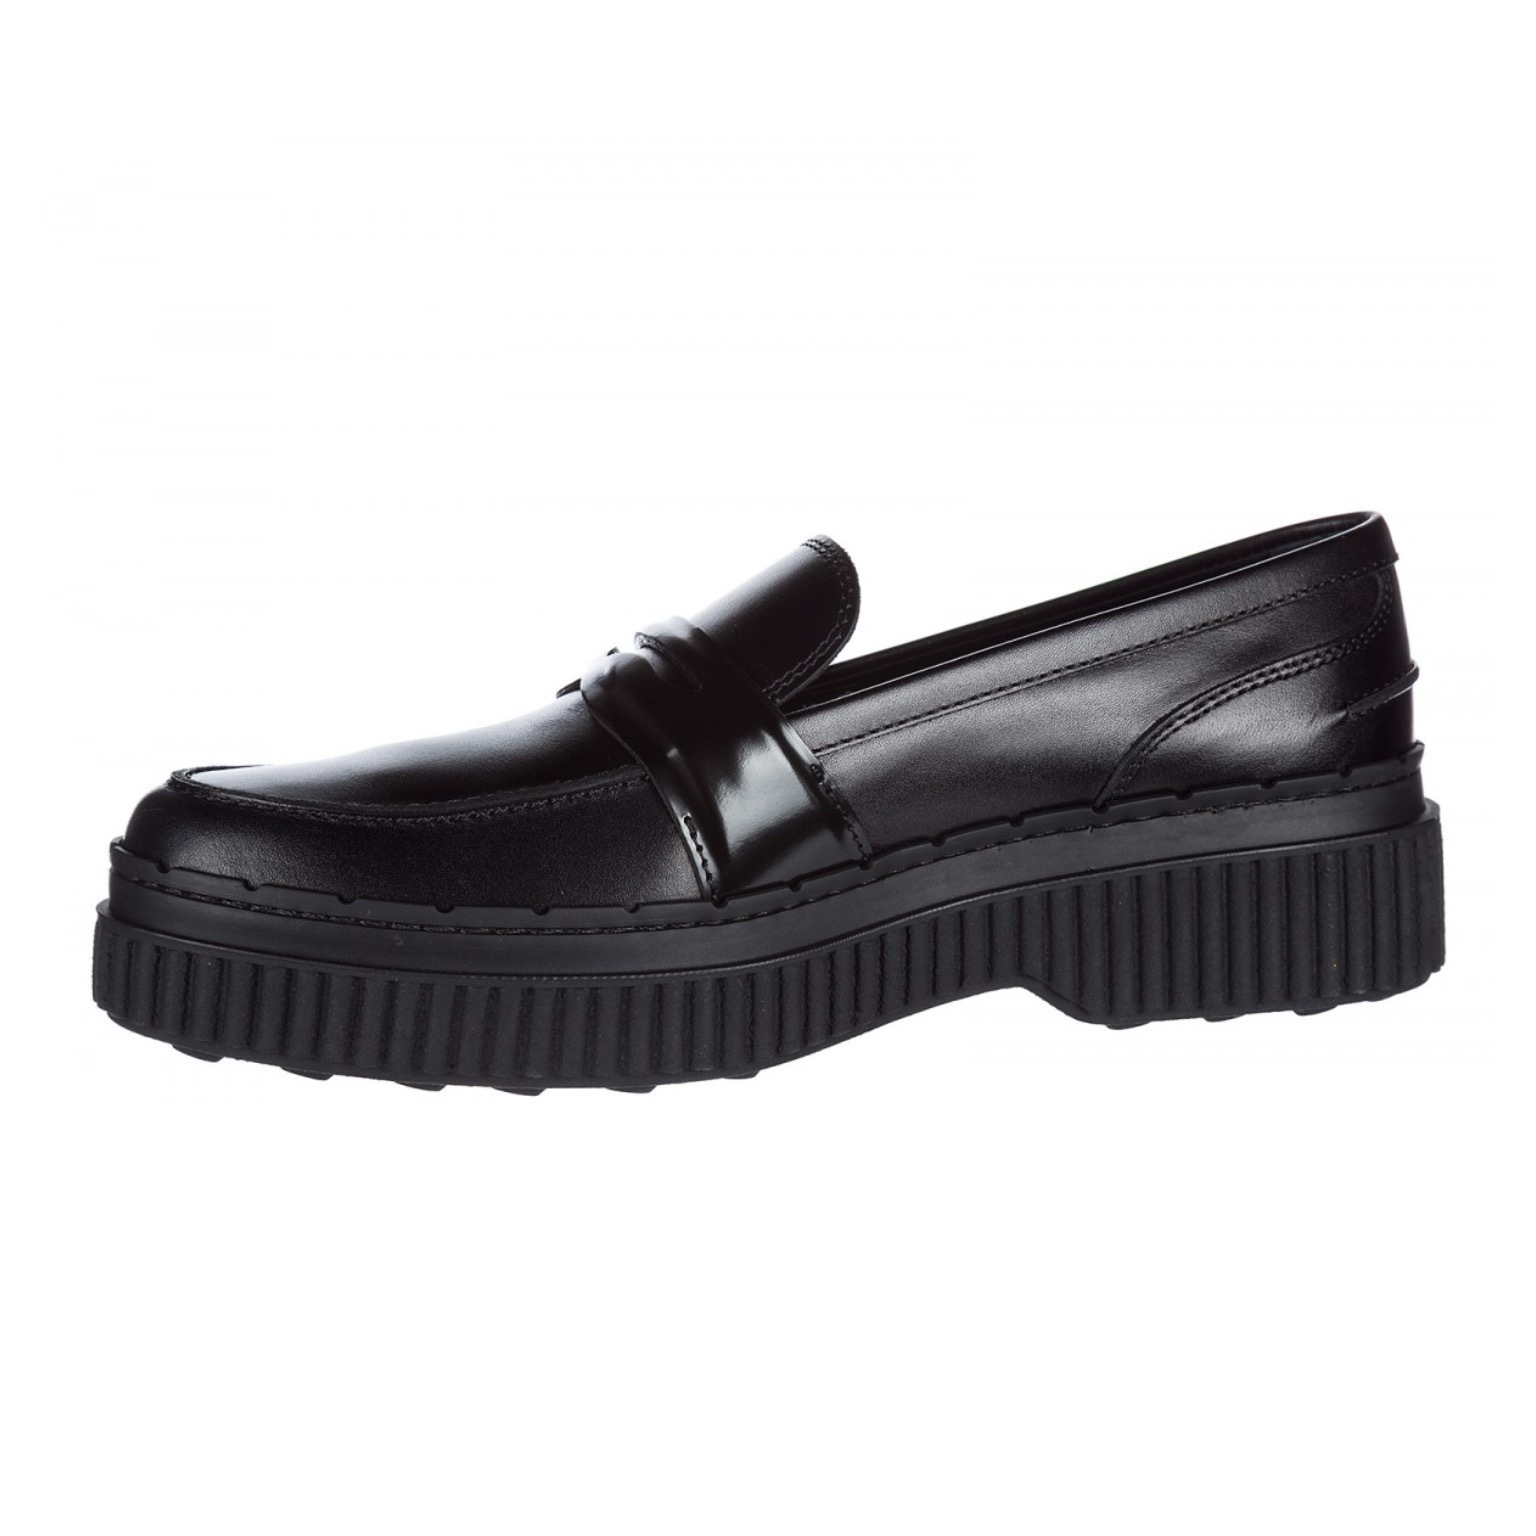 ★★TOD'S《トッズ》LEATHER LOAFERS MOCCASINS  送料込み★★